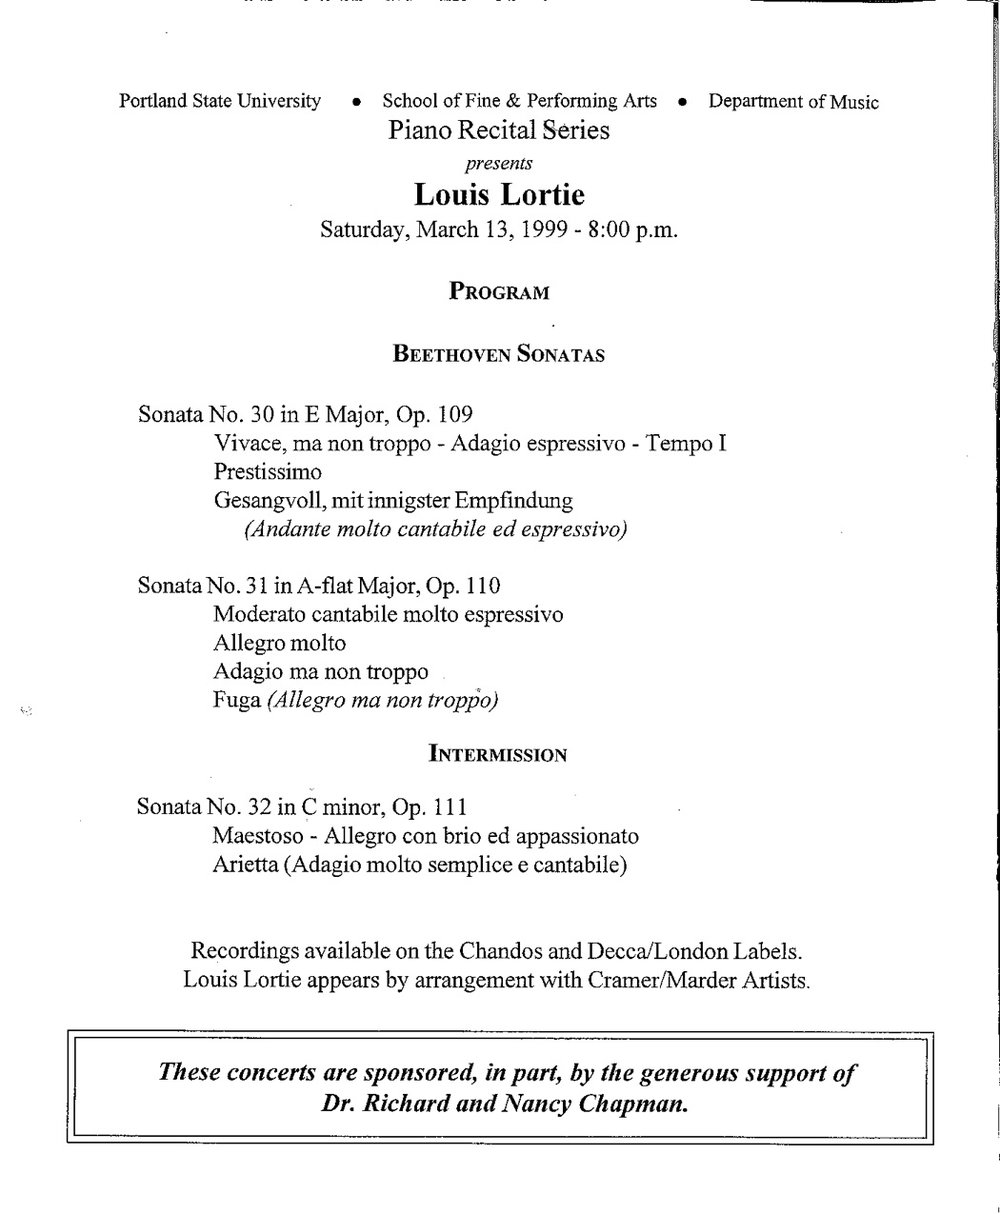 Lortie98-99_Program2.jpg